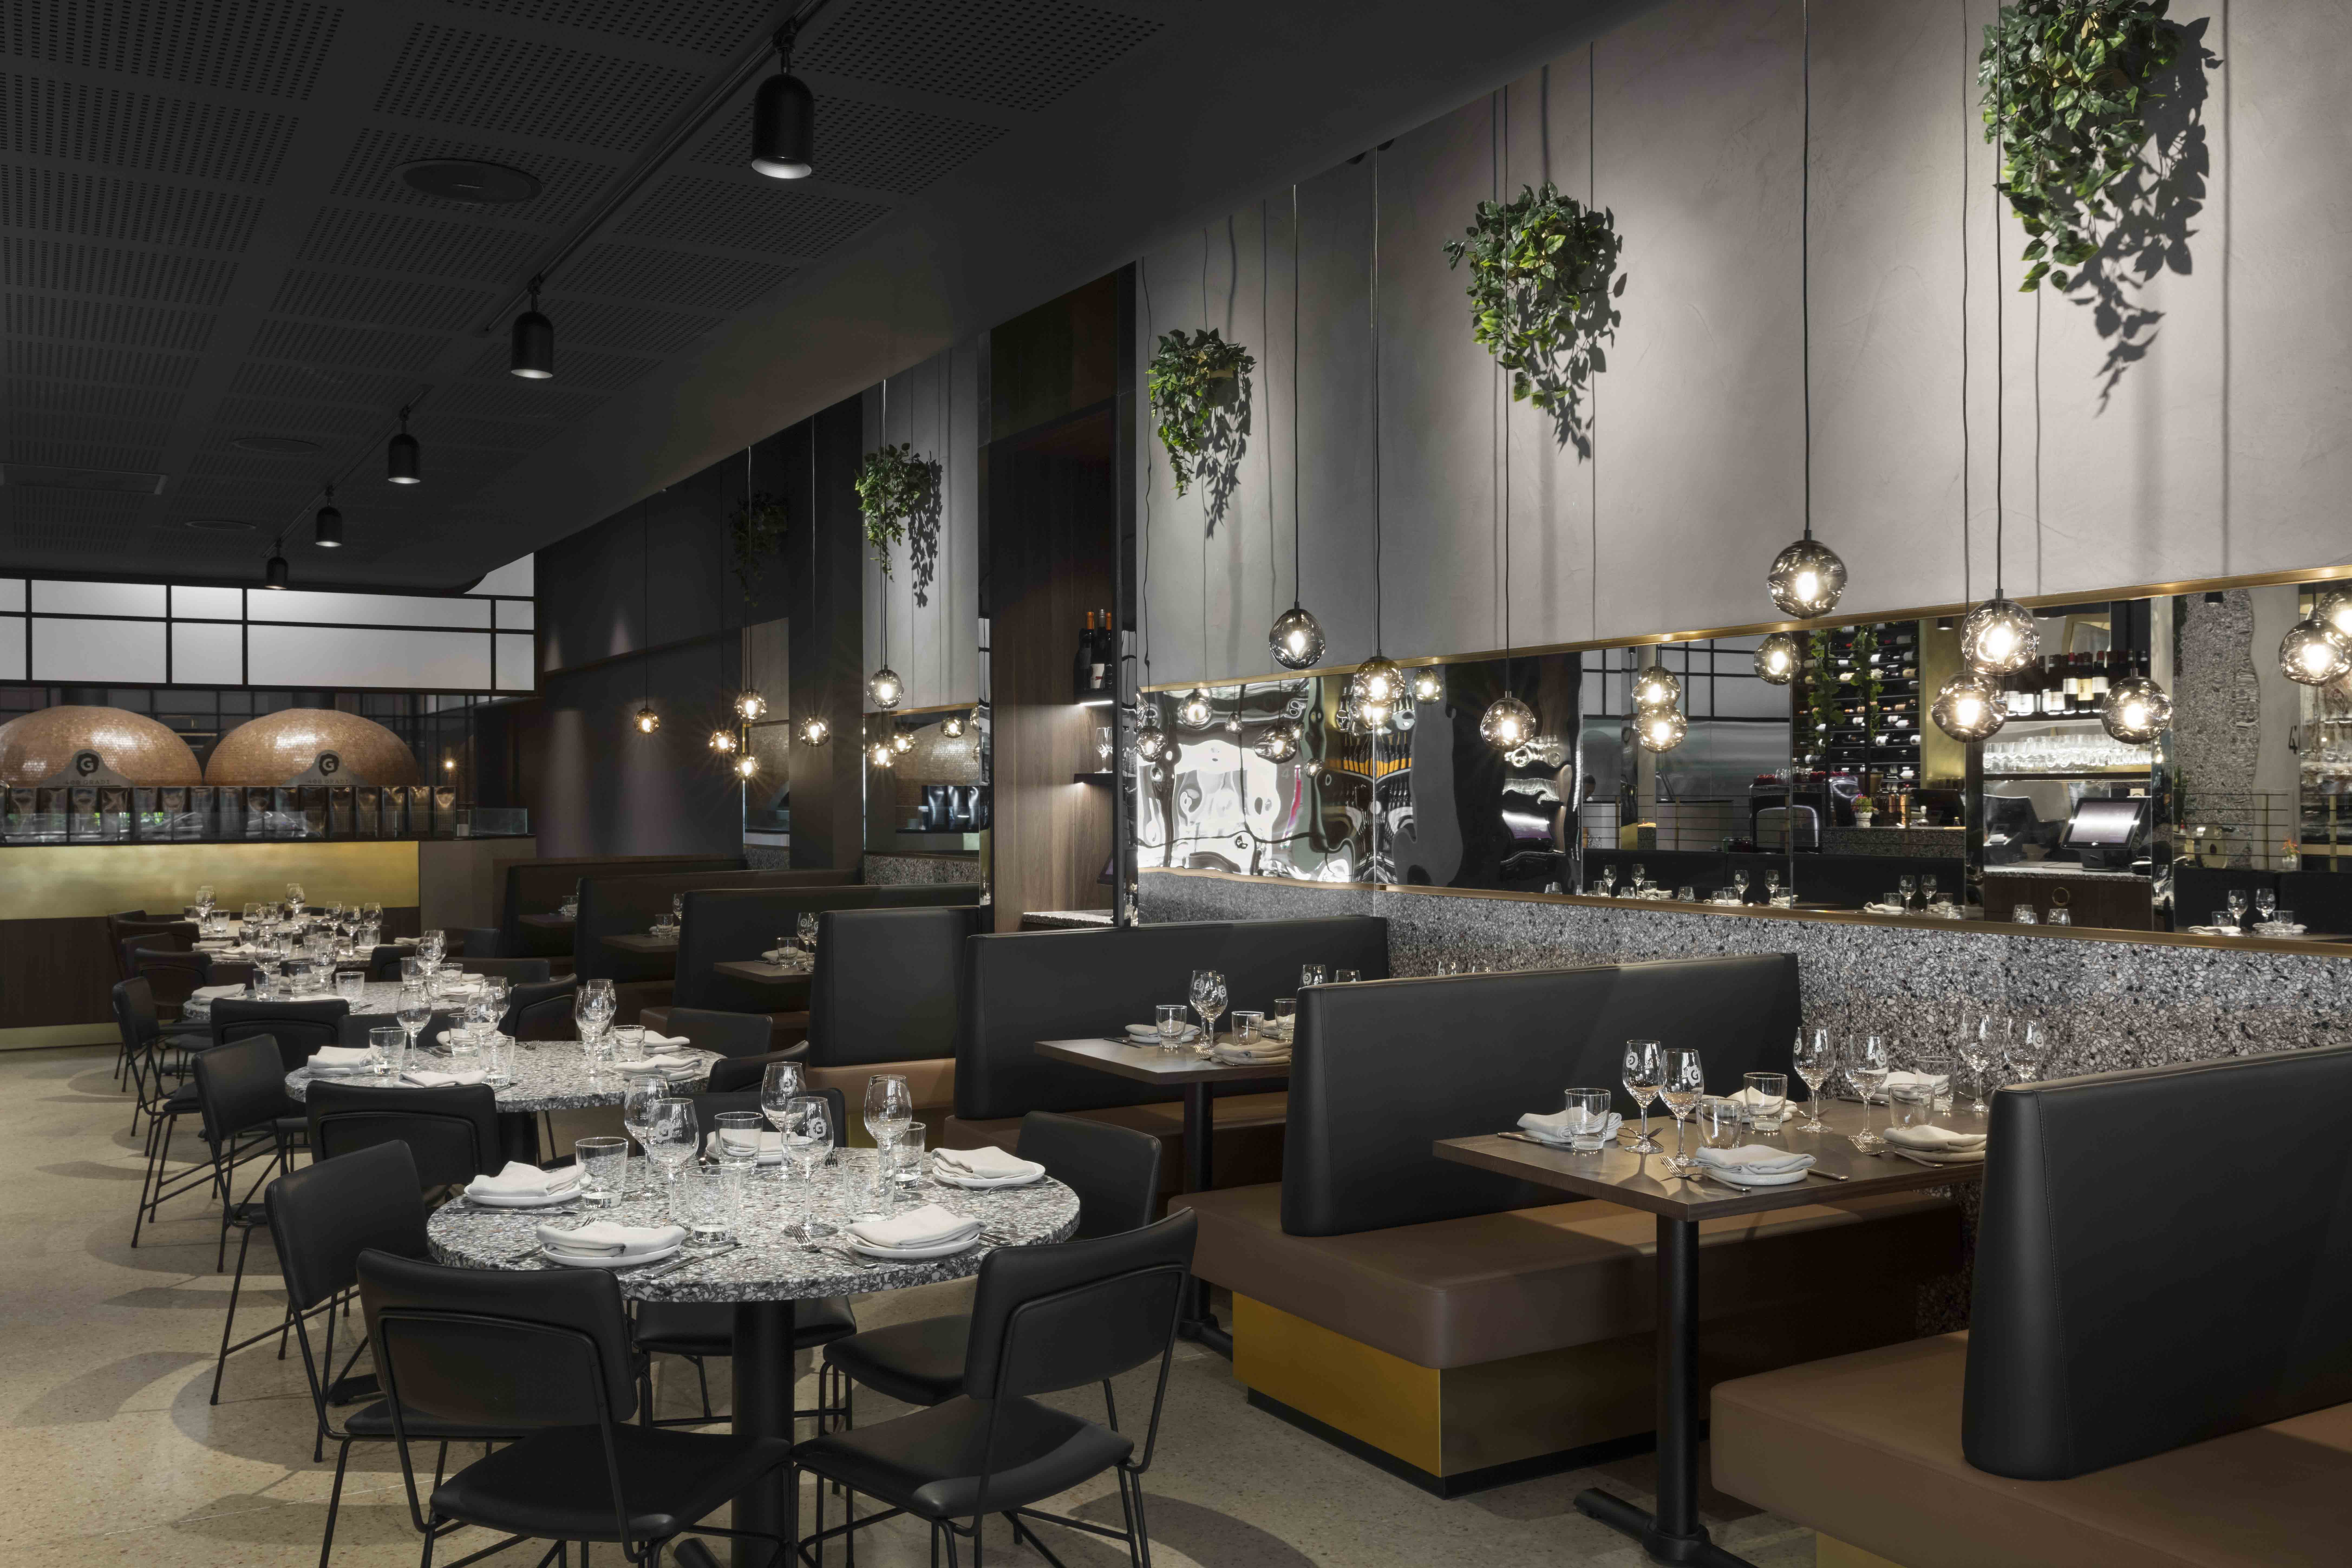 01_DEAN_DYSON_ARCHITECTS_HIGHRES_400_GRADI_TABLES_BOOTHS